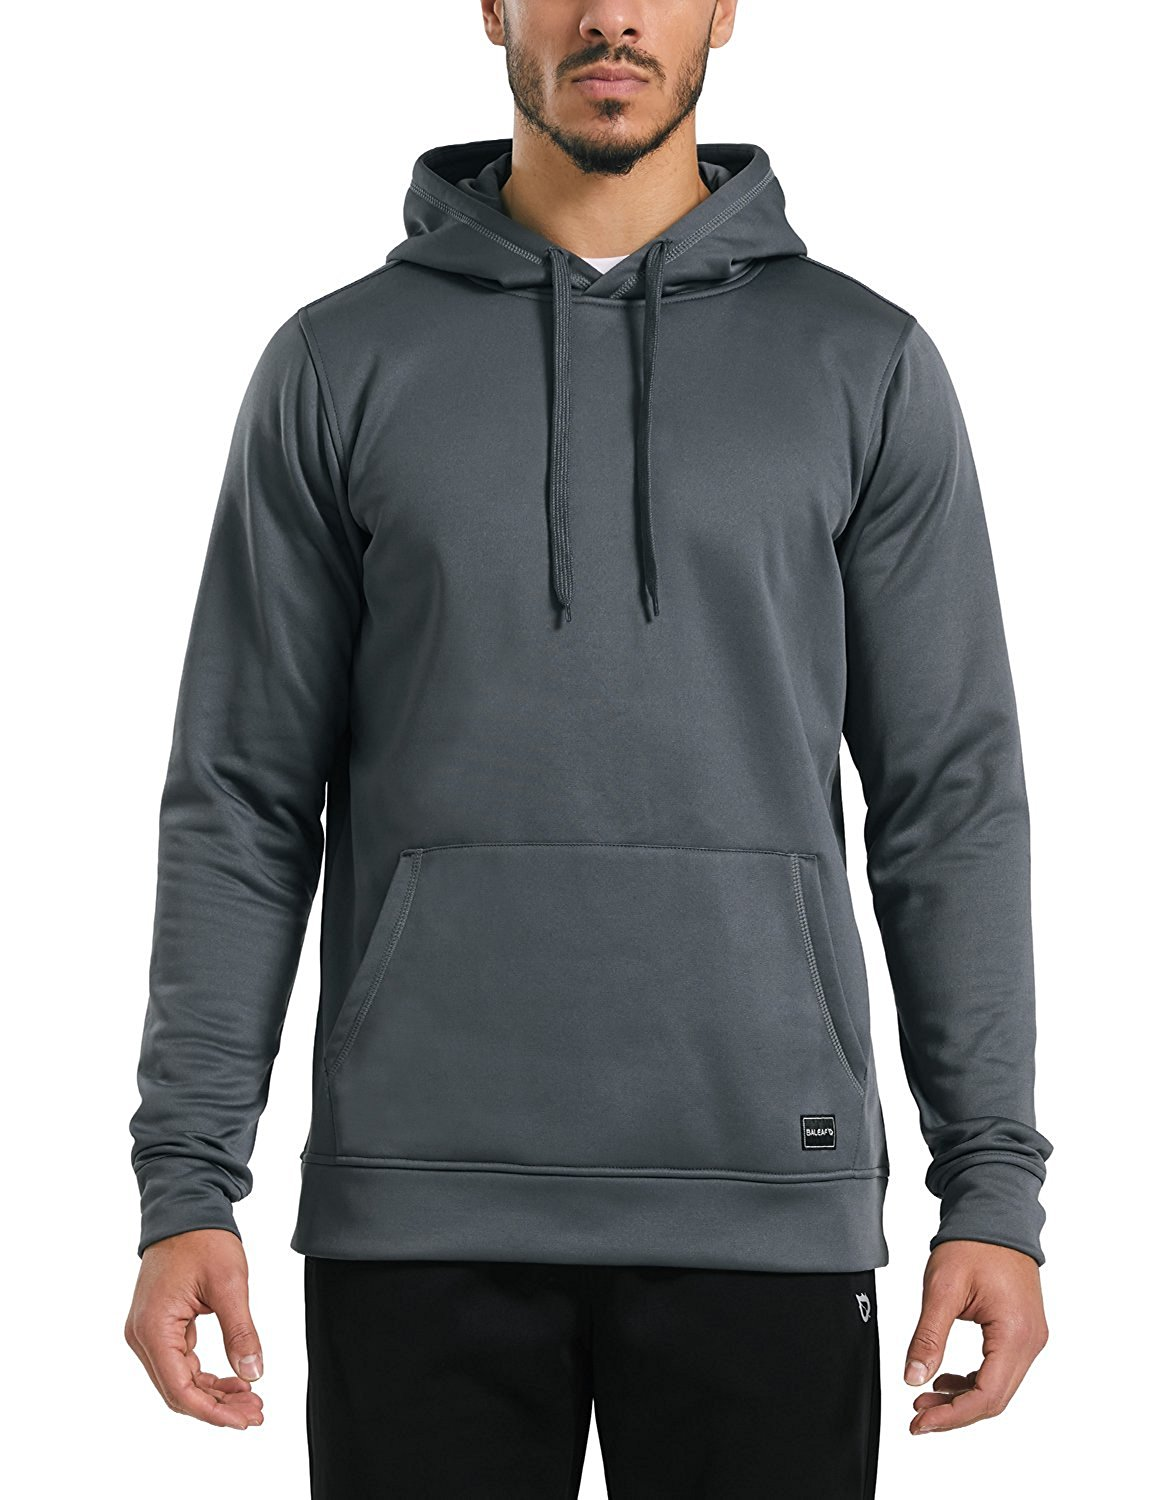 dc2db79fde7 Get Quotations · Baleaf Men s Thermal Fleece Hoodie Pullover Sweatshirt  Grey Size XL